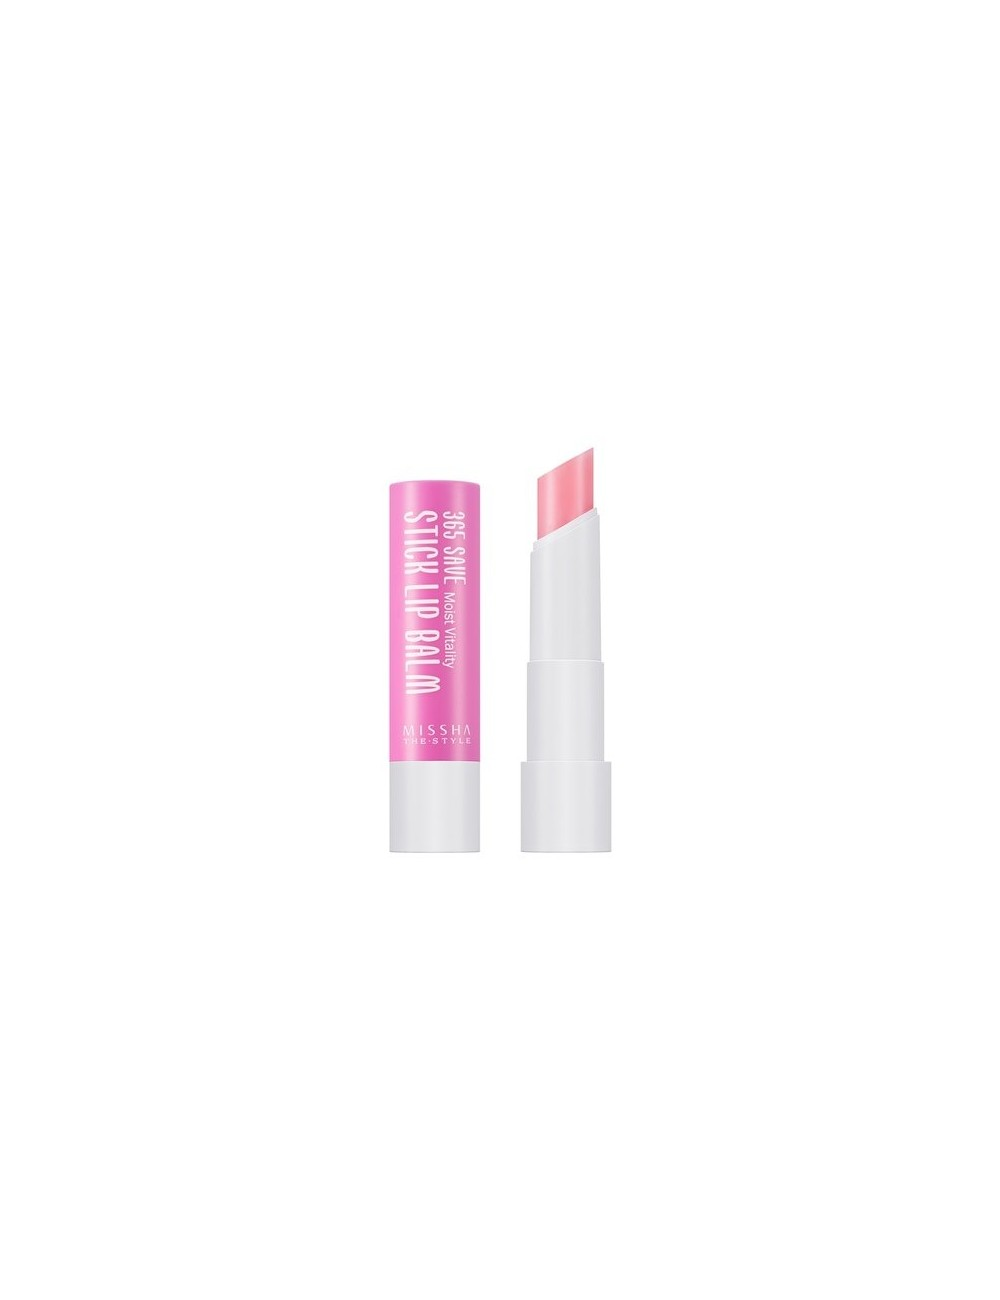 Bálsamo labial MISSHA The Style 365 Save Stick Lip Balm Moist Vitality